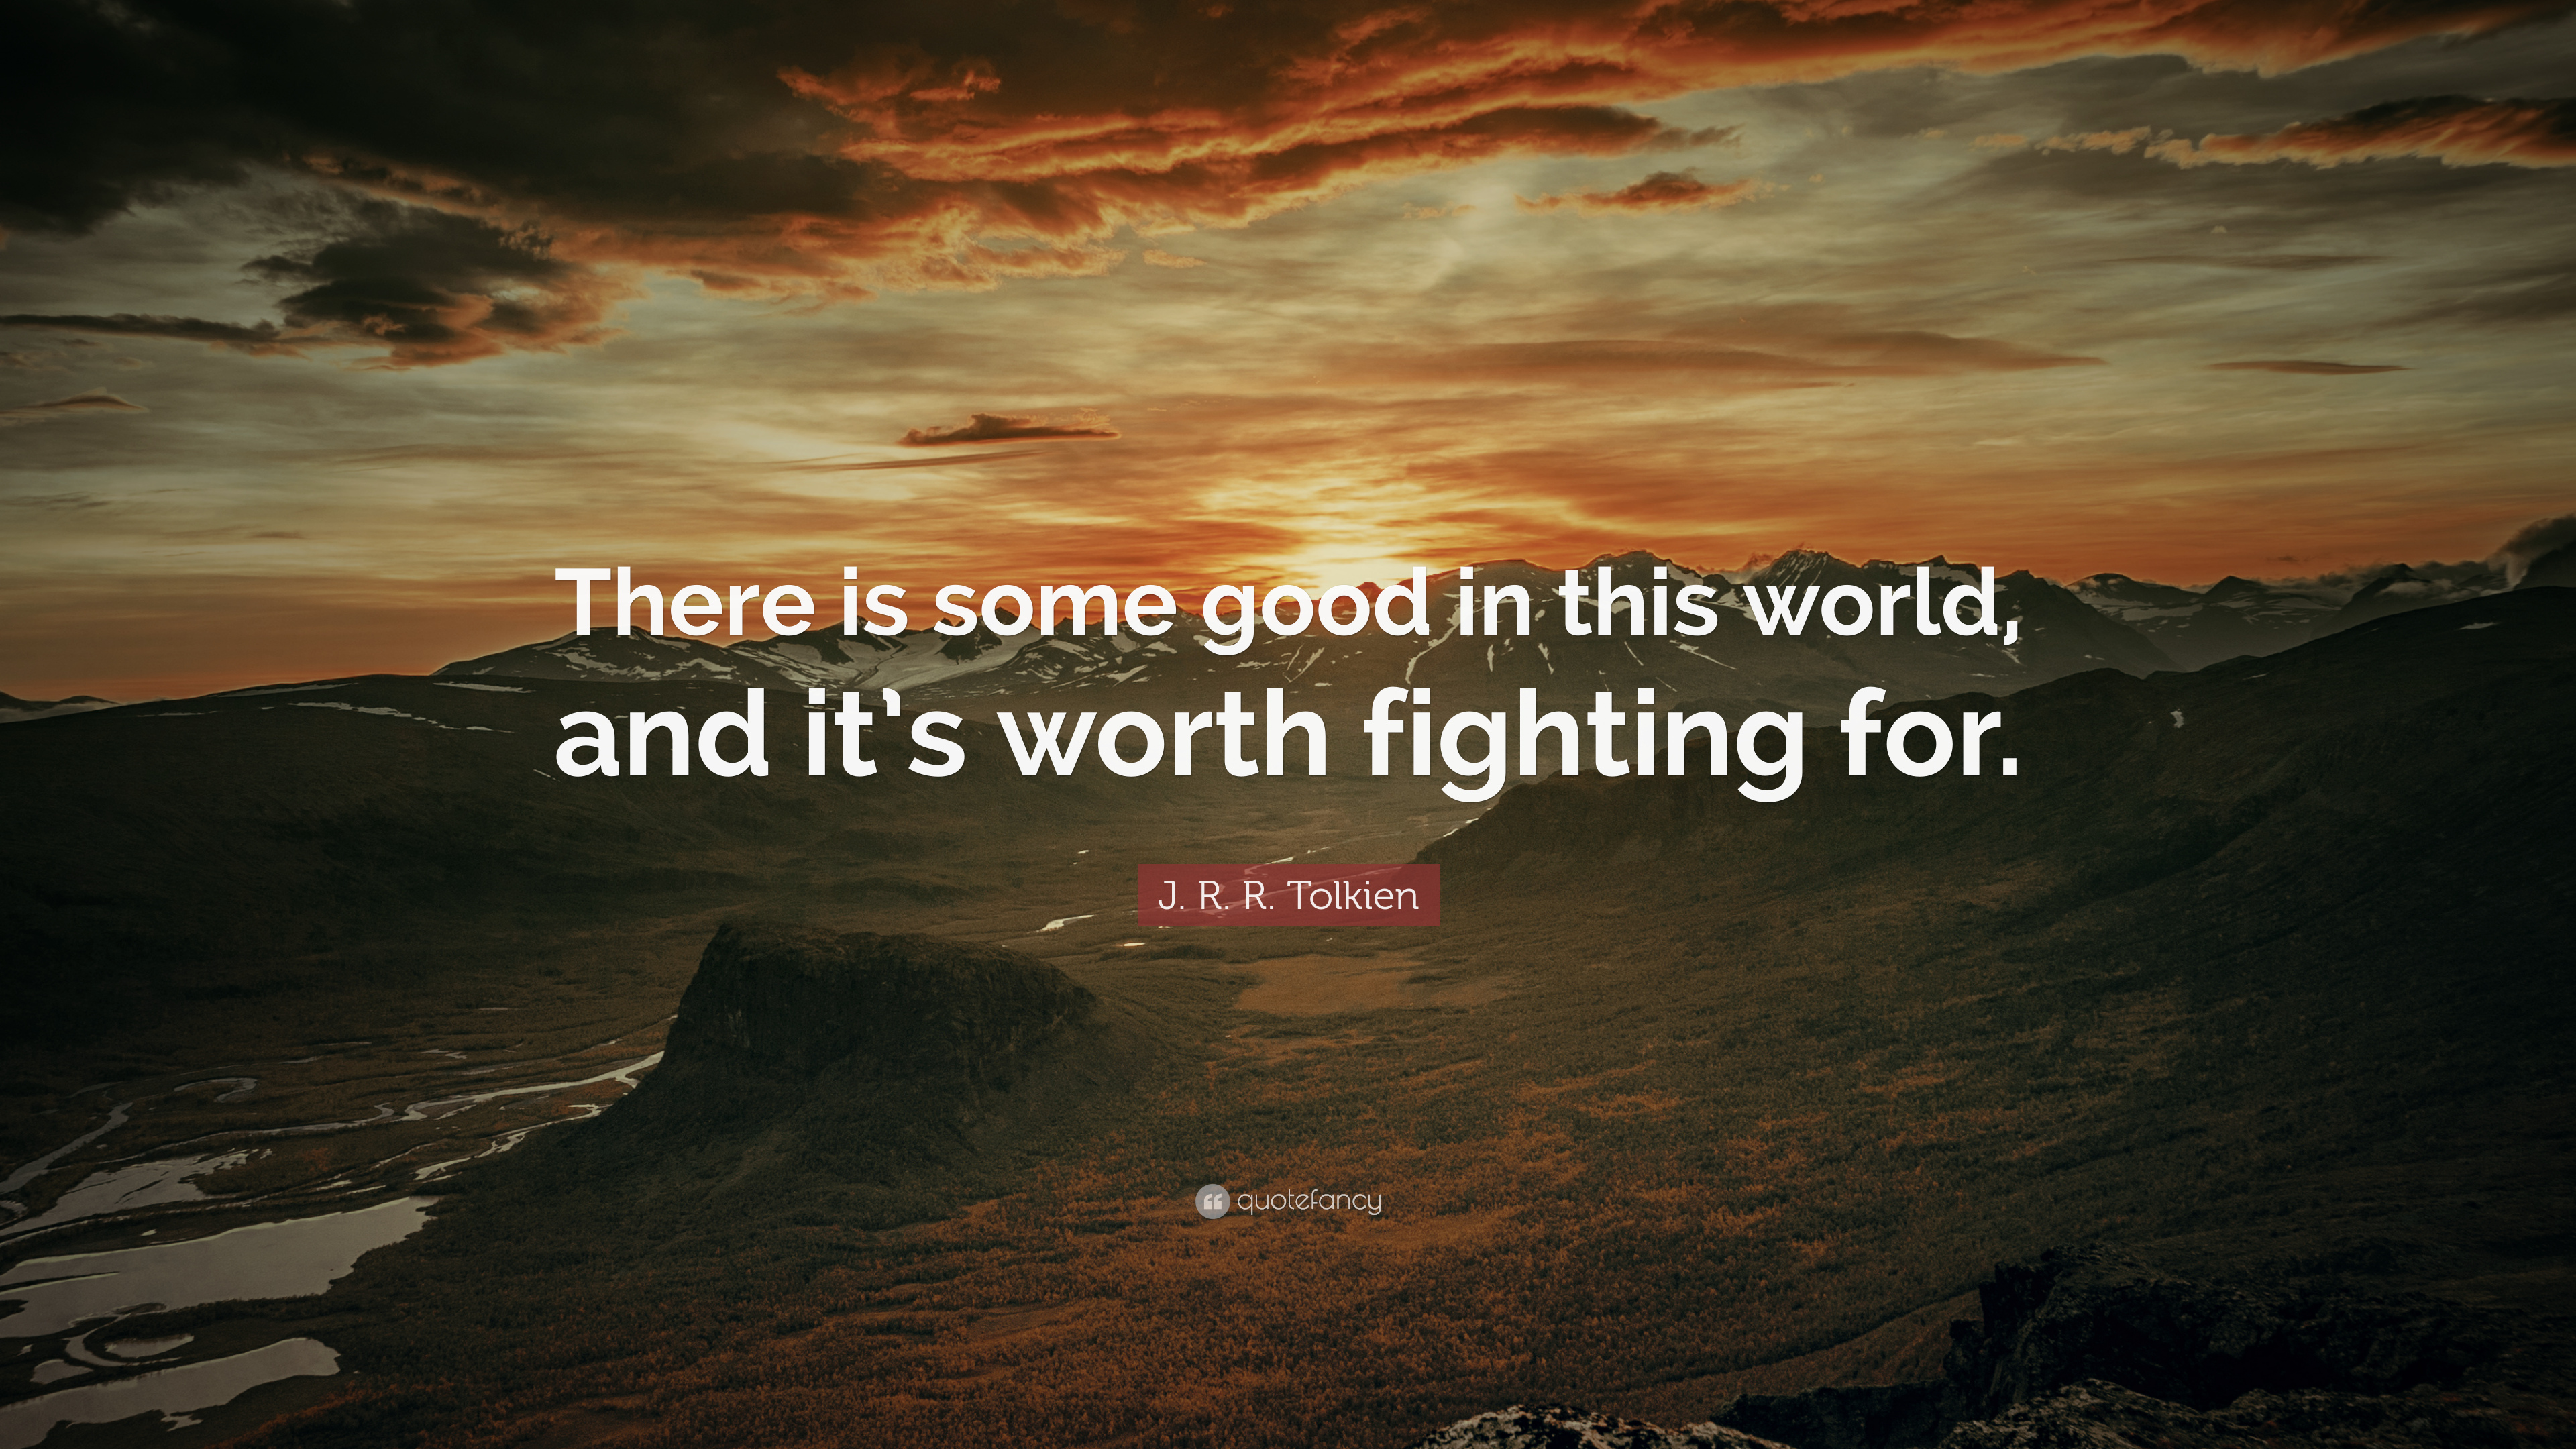 """Jrr Tolkien Quotes About Life Jrrtolkien Quote """"There Is Some Good In This World And"""